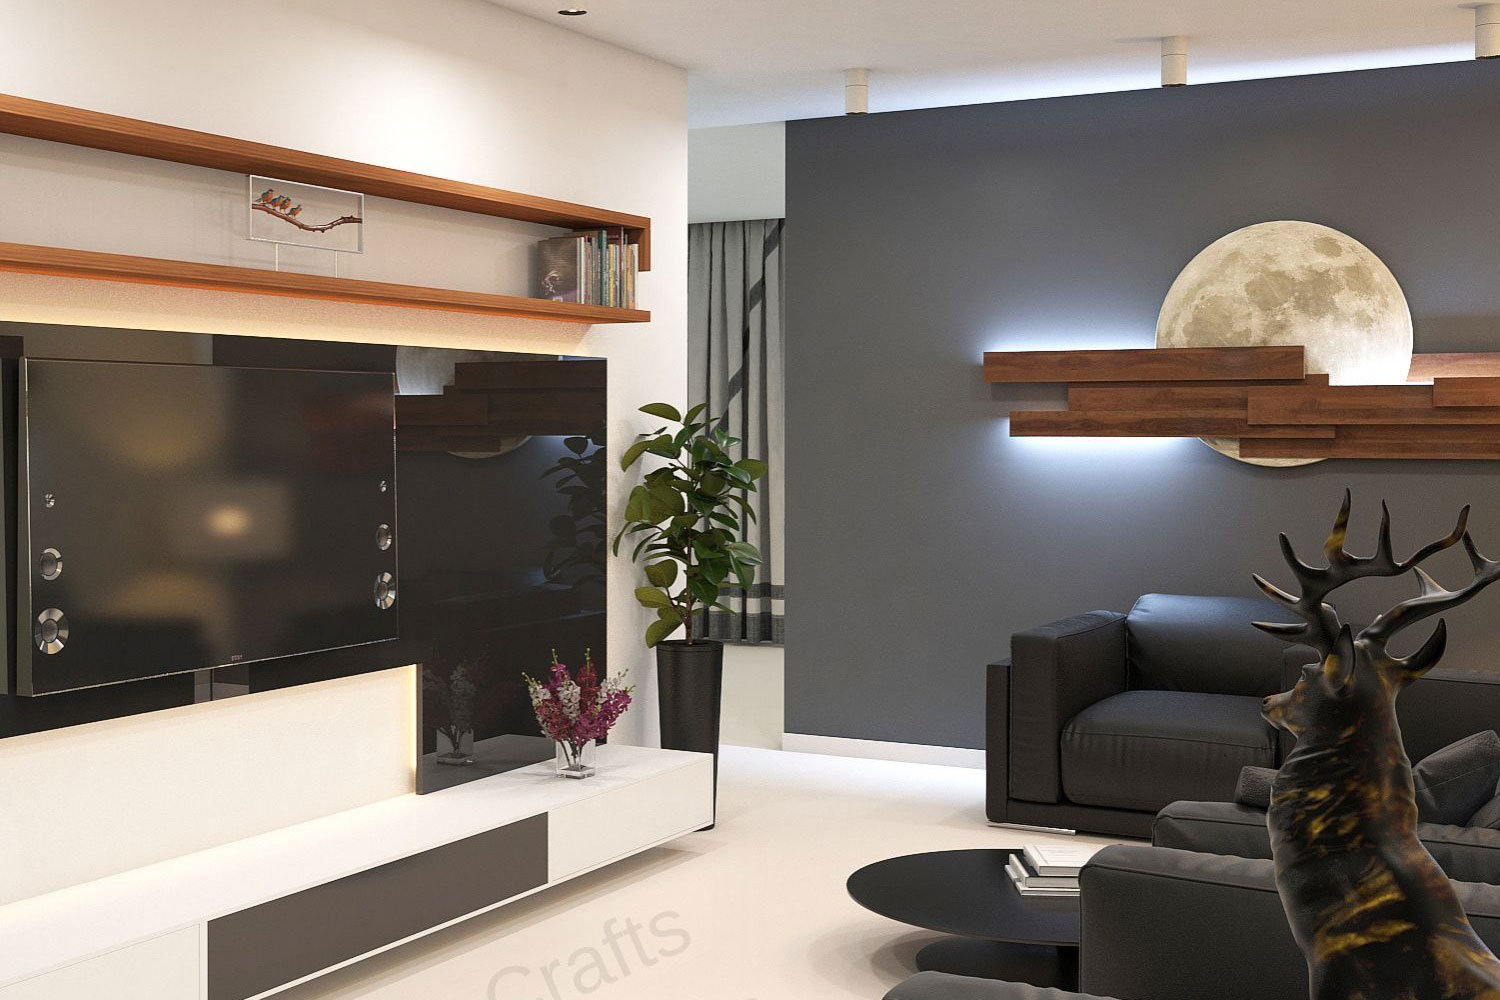 How to choose best interior designer for your home